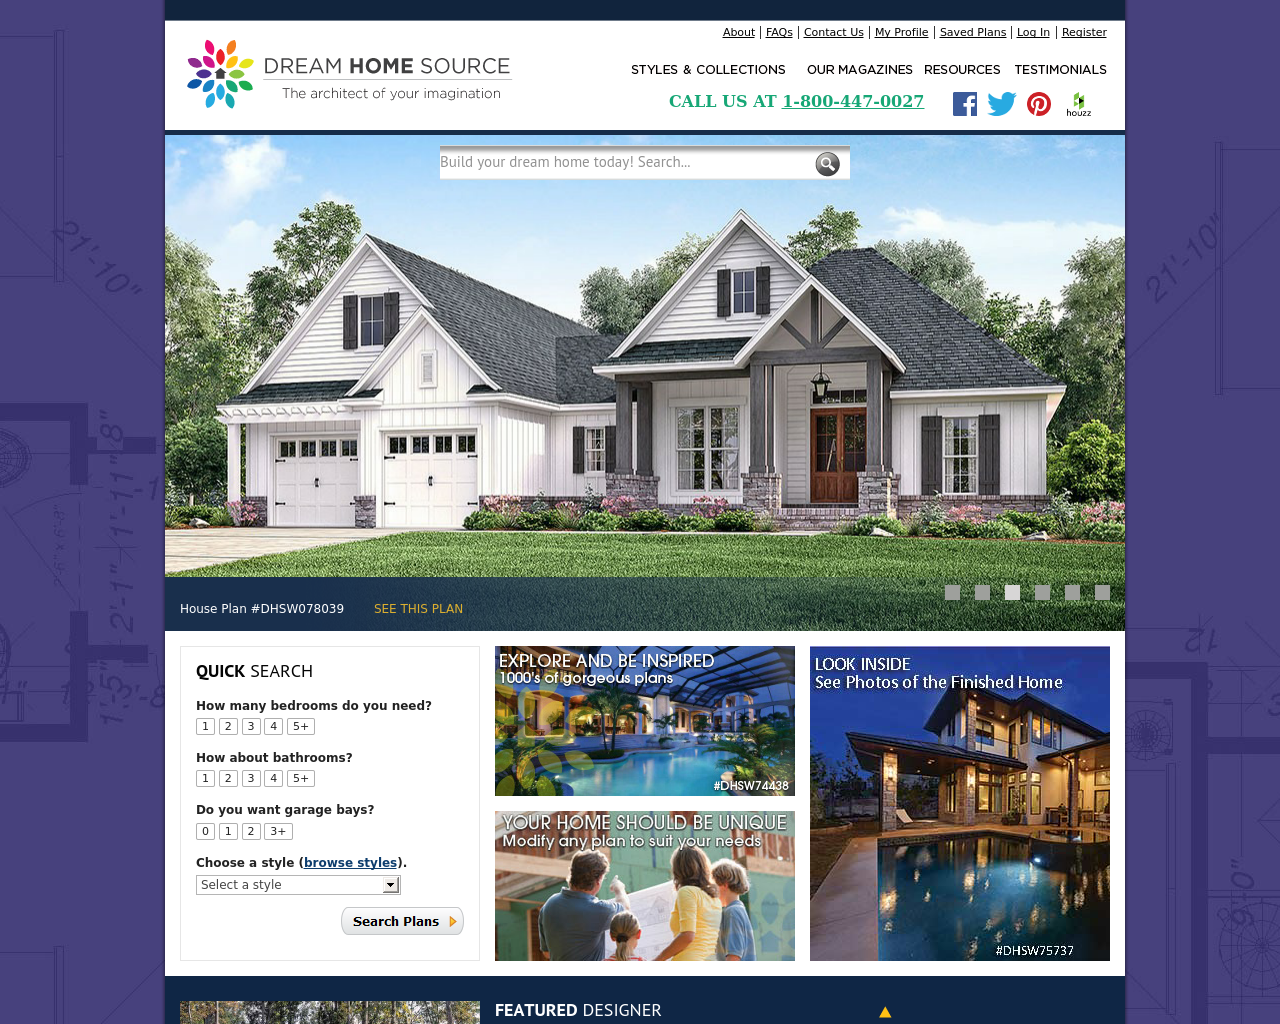 Dream-House-Source-Advertising-Reviews-Pricing